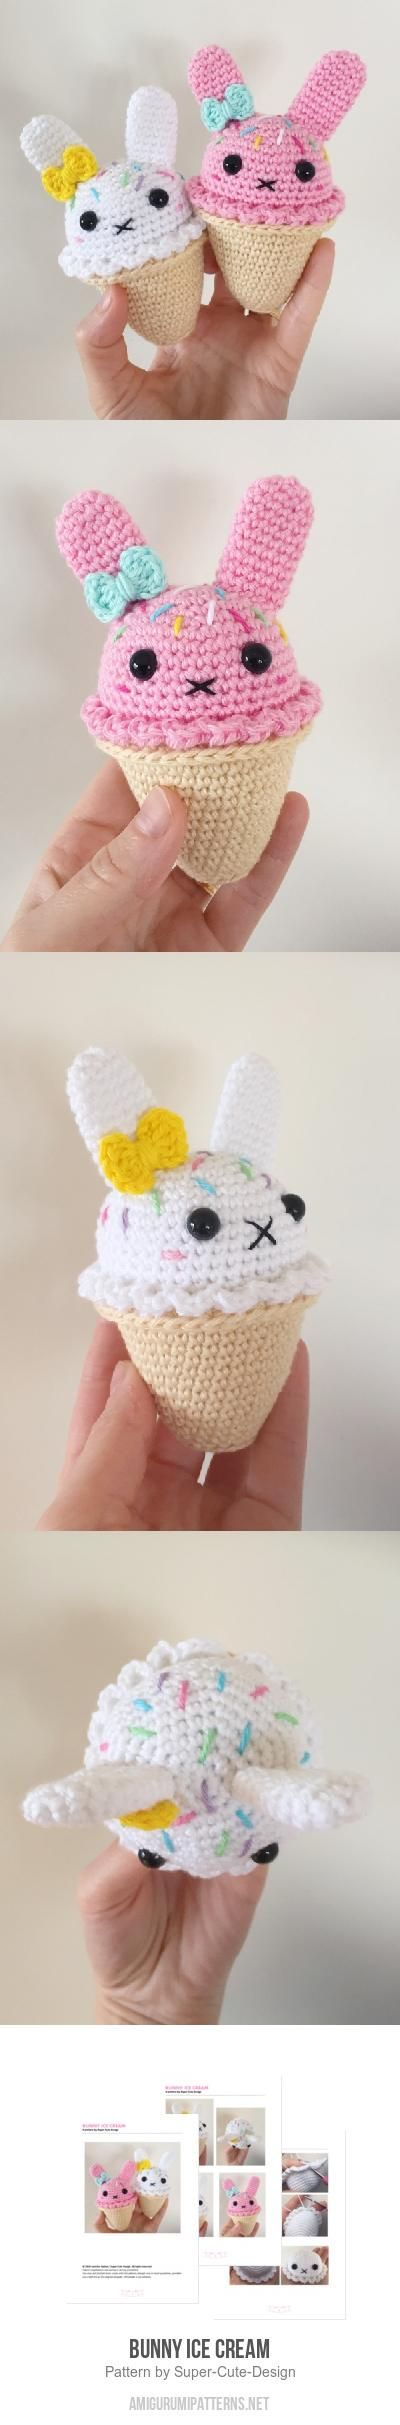 Bunny Ice Cream Amigurumi Pattern